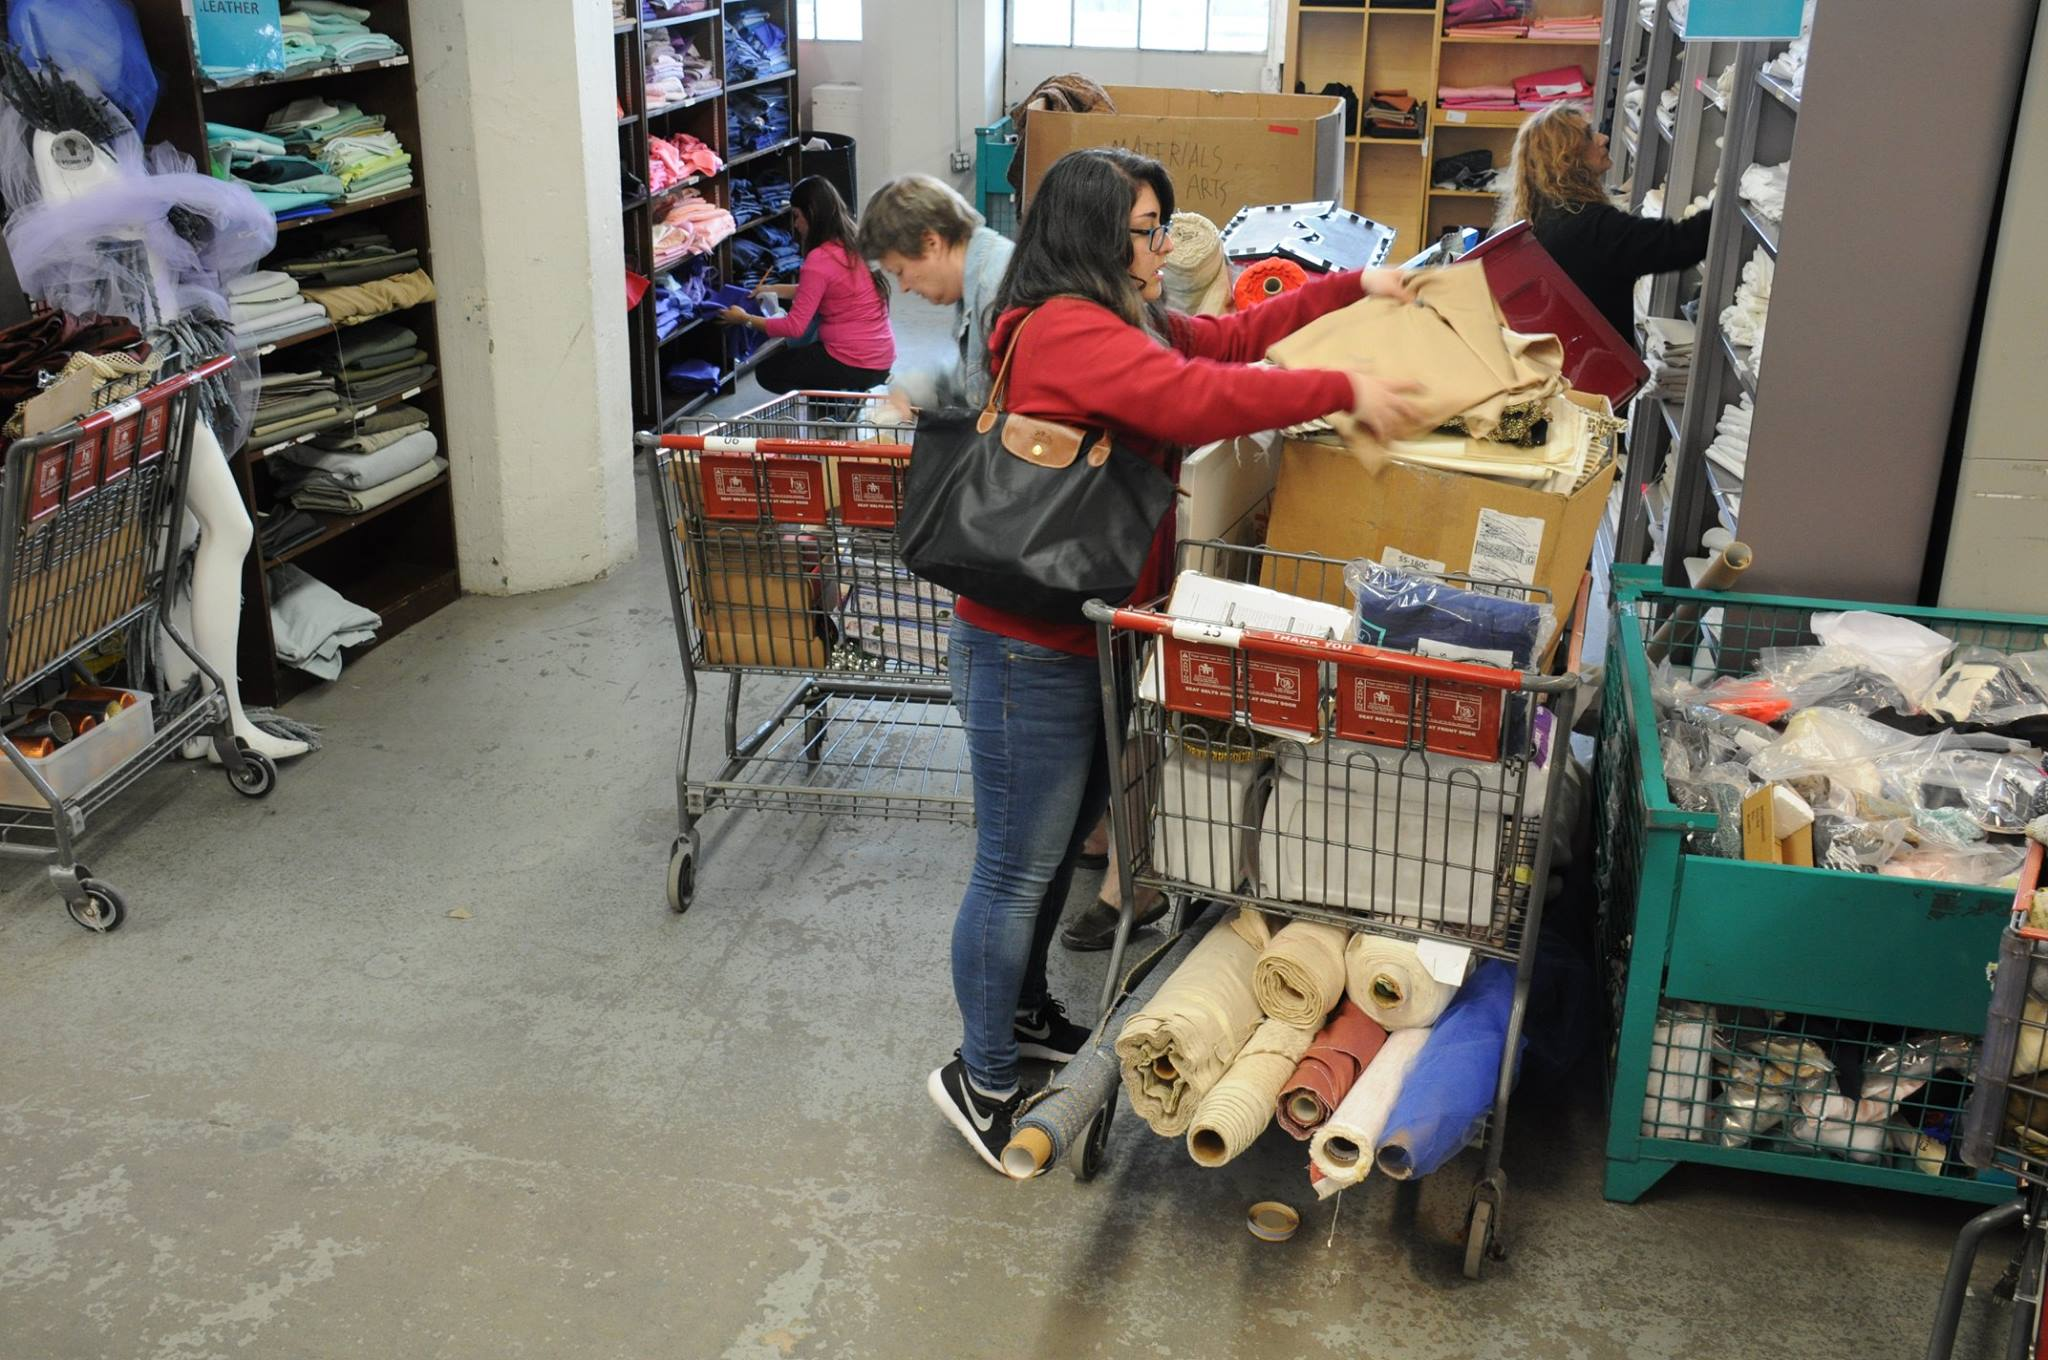 Are you a public school teacher? Pick up a 'truckload' of free supplies at this Long Island City warehouse